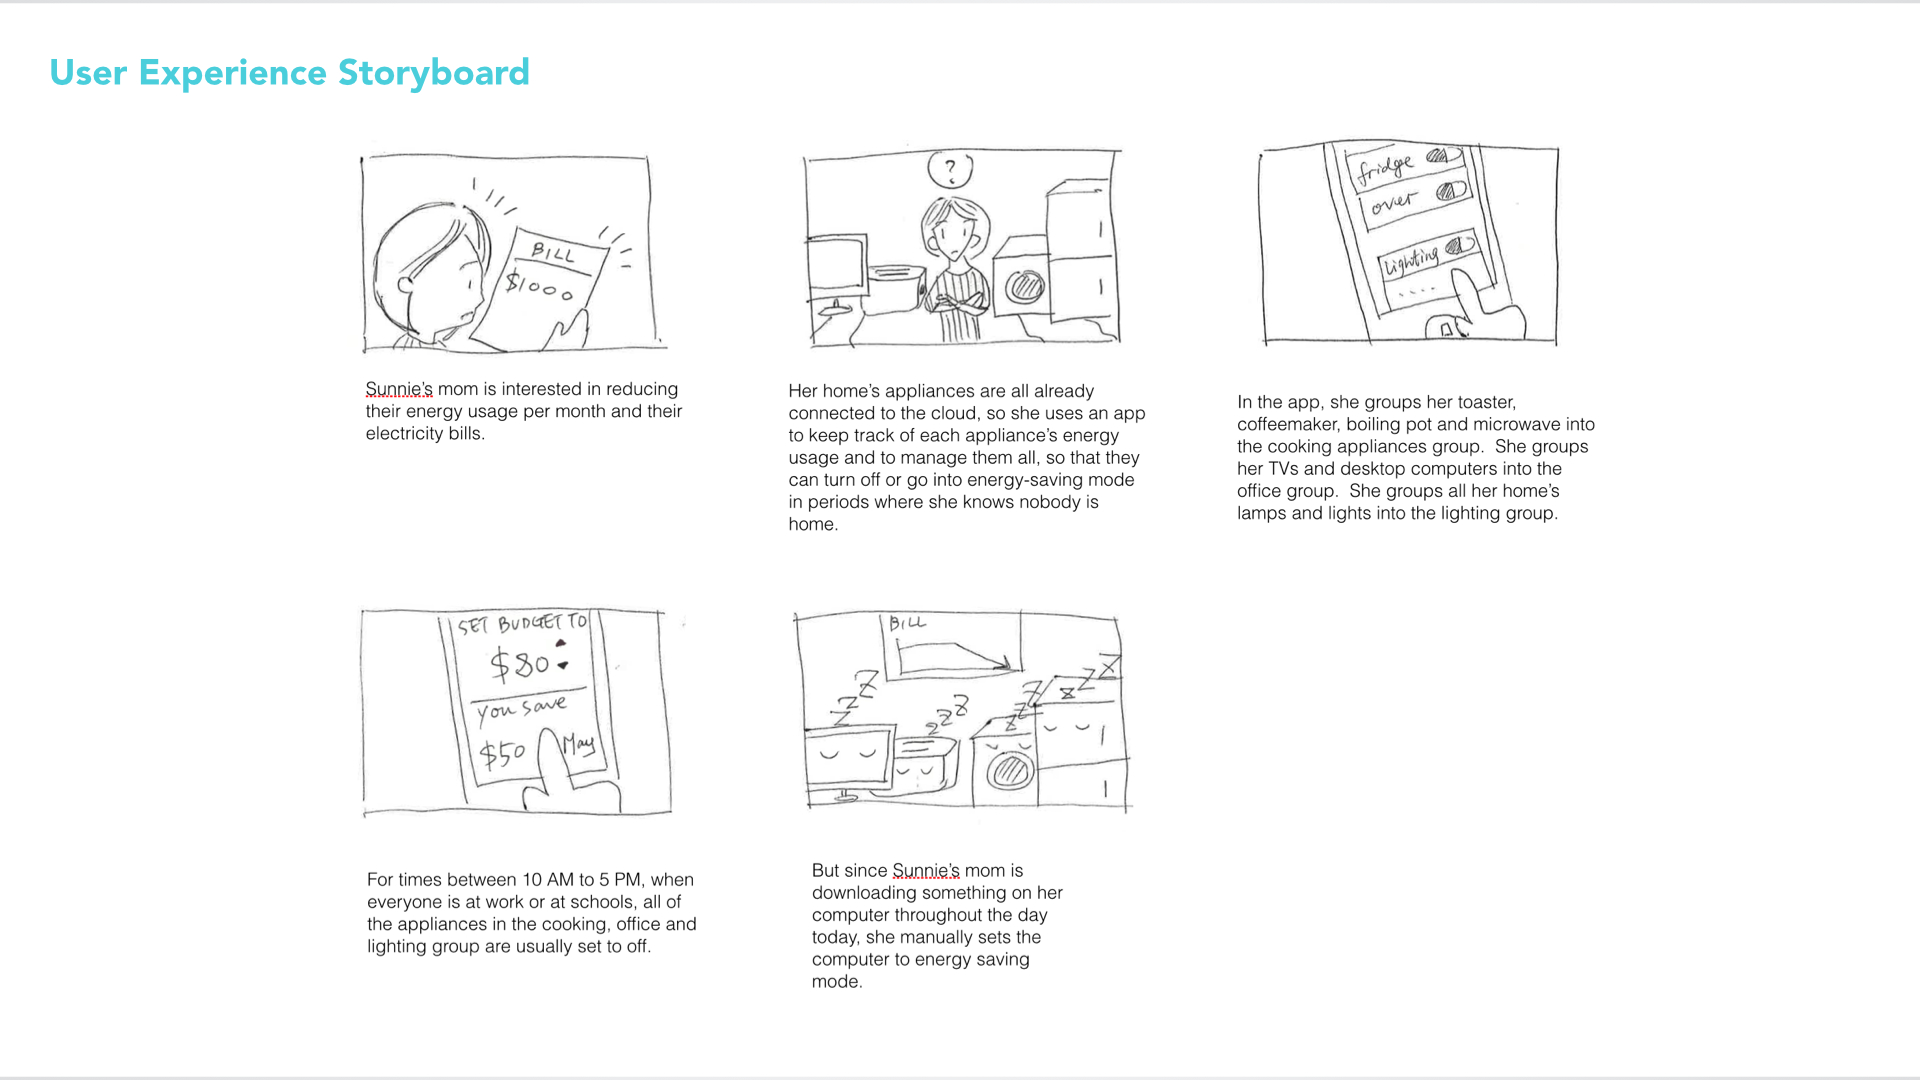 """At the beginning of our project, we explored various directions related to household informatics and data visualization. This is one of 3 user experience storyboards we made and the last image of appliances """"sleeping"""" is what ultimately inspired our idea for Zooly."""